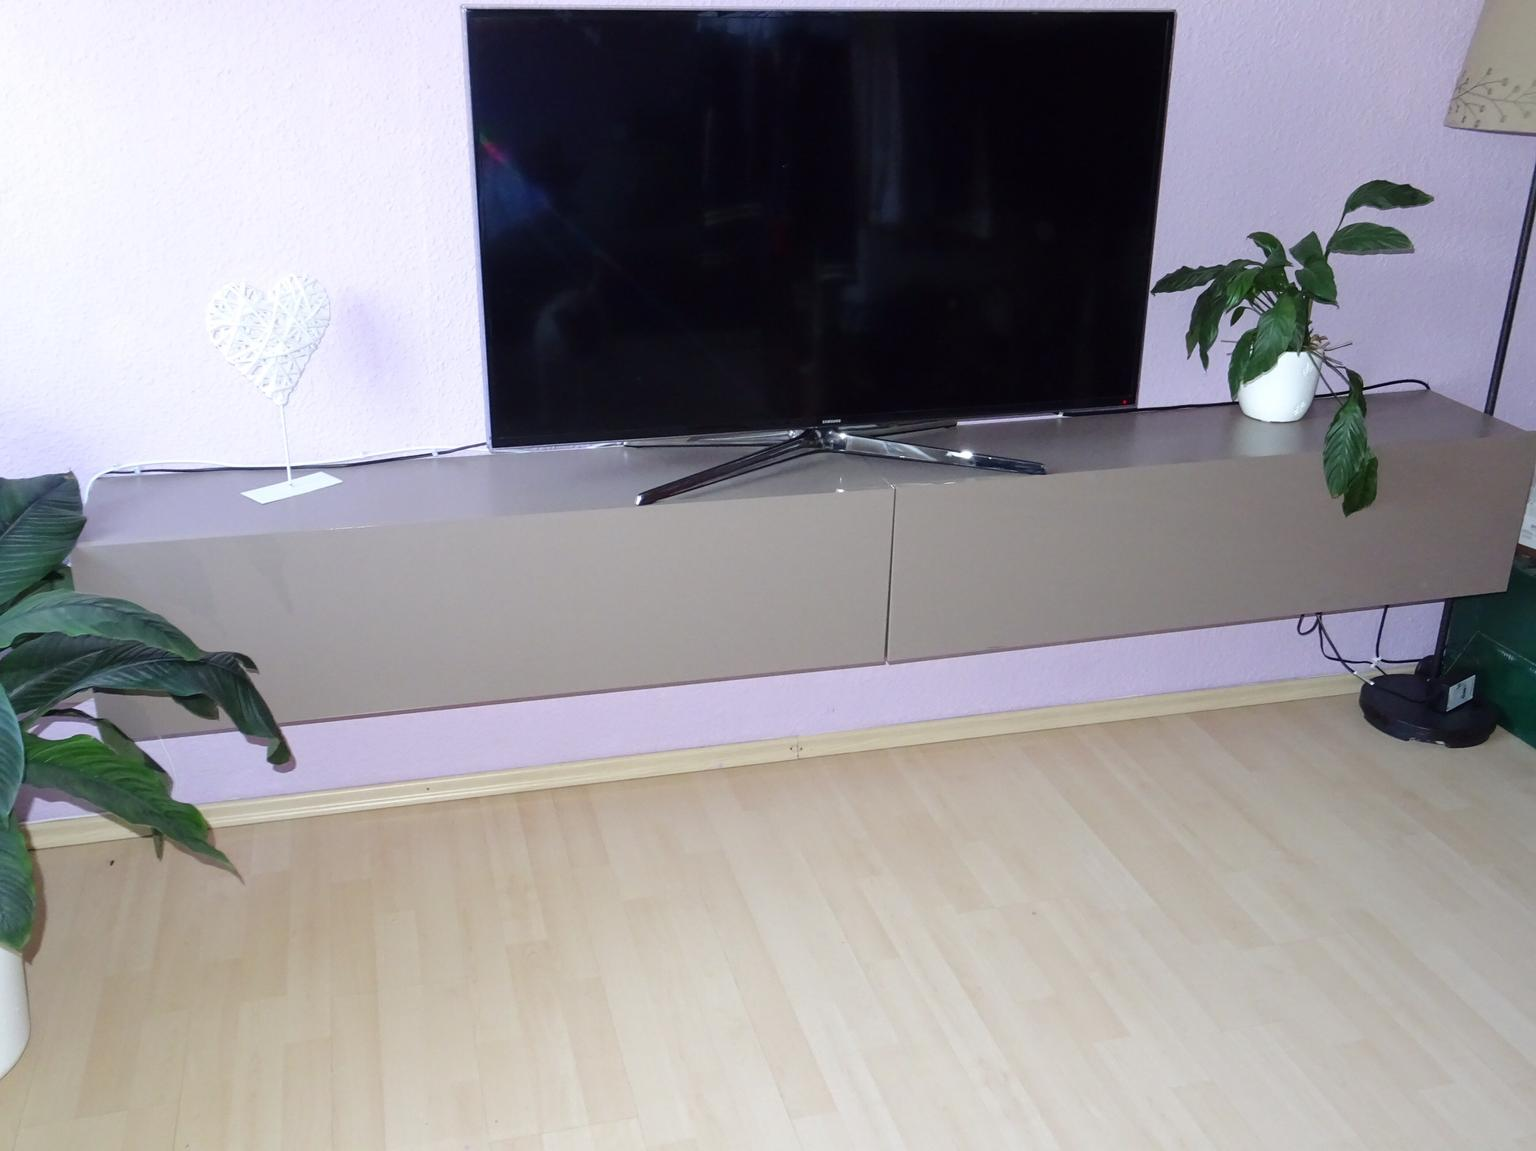 Tv Board Bank Regal Schrank Kommode Wand In 59969 Bromskirchen For 140 00 For Sale Shpock